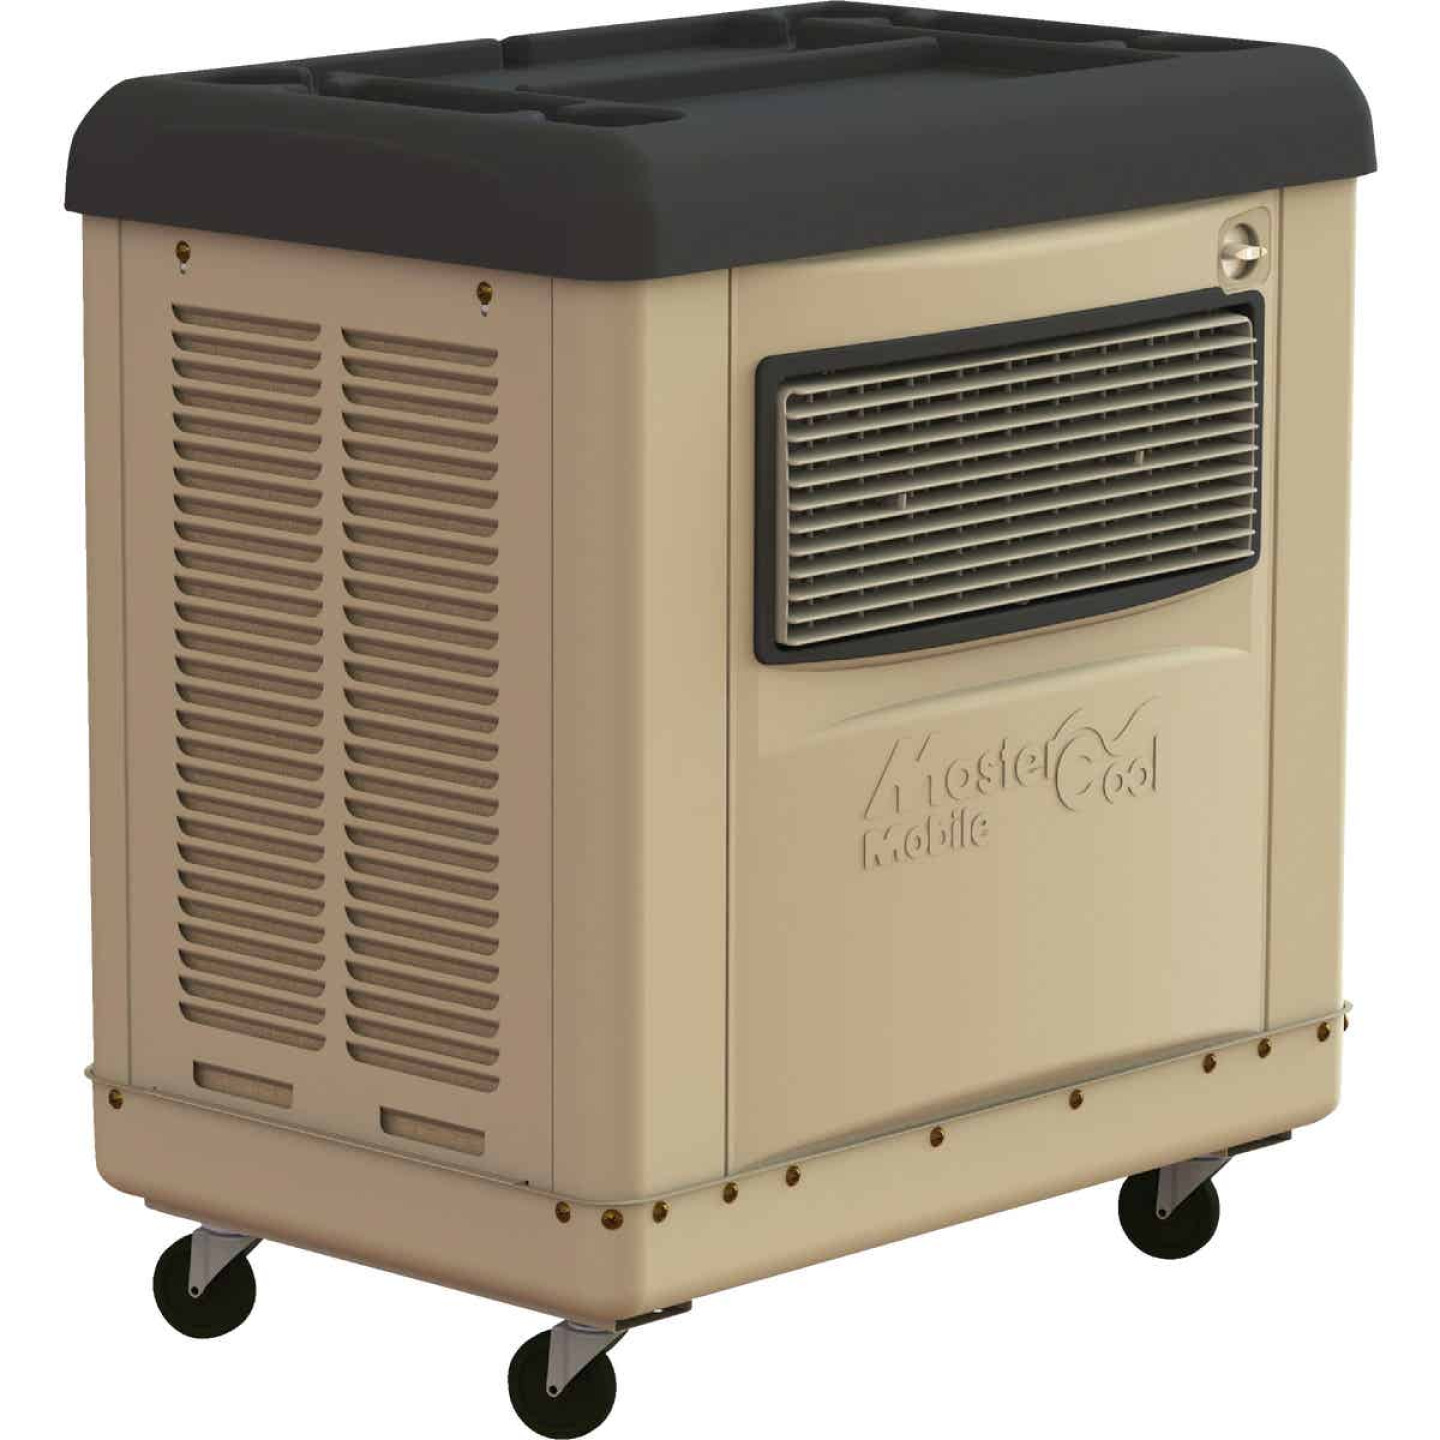 MasterCool 1145 CFM Portable Evaporative Cooler, 600 Sq. Ft. Image 1